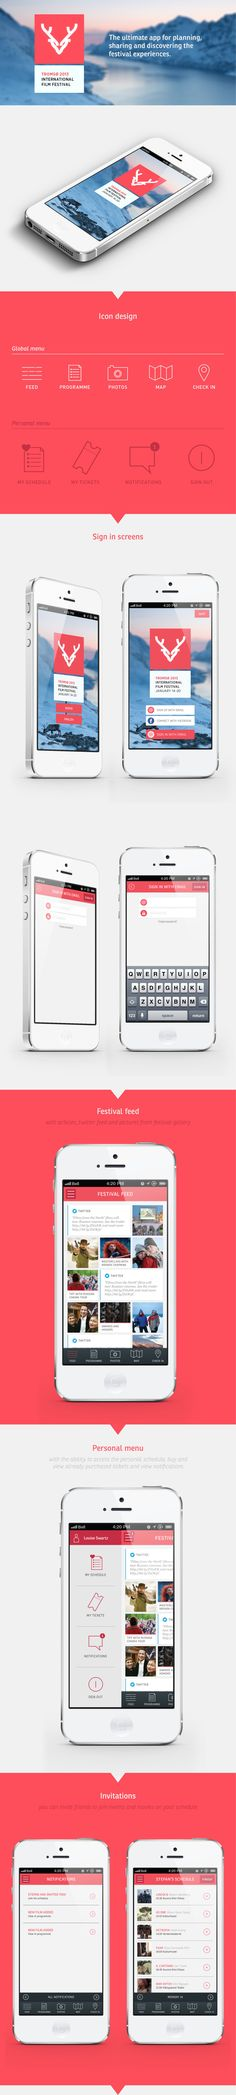 Festival app | Tromsø International Film Festival by Hanna Elise Haugerød, via Behance